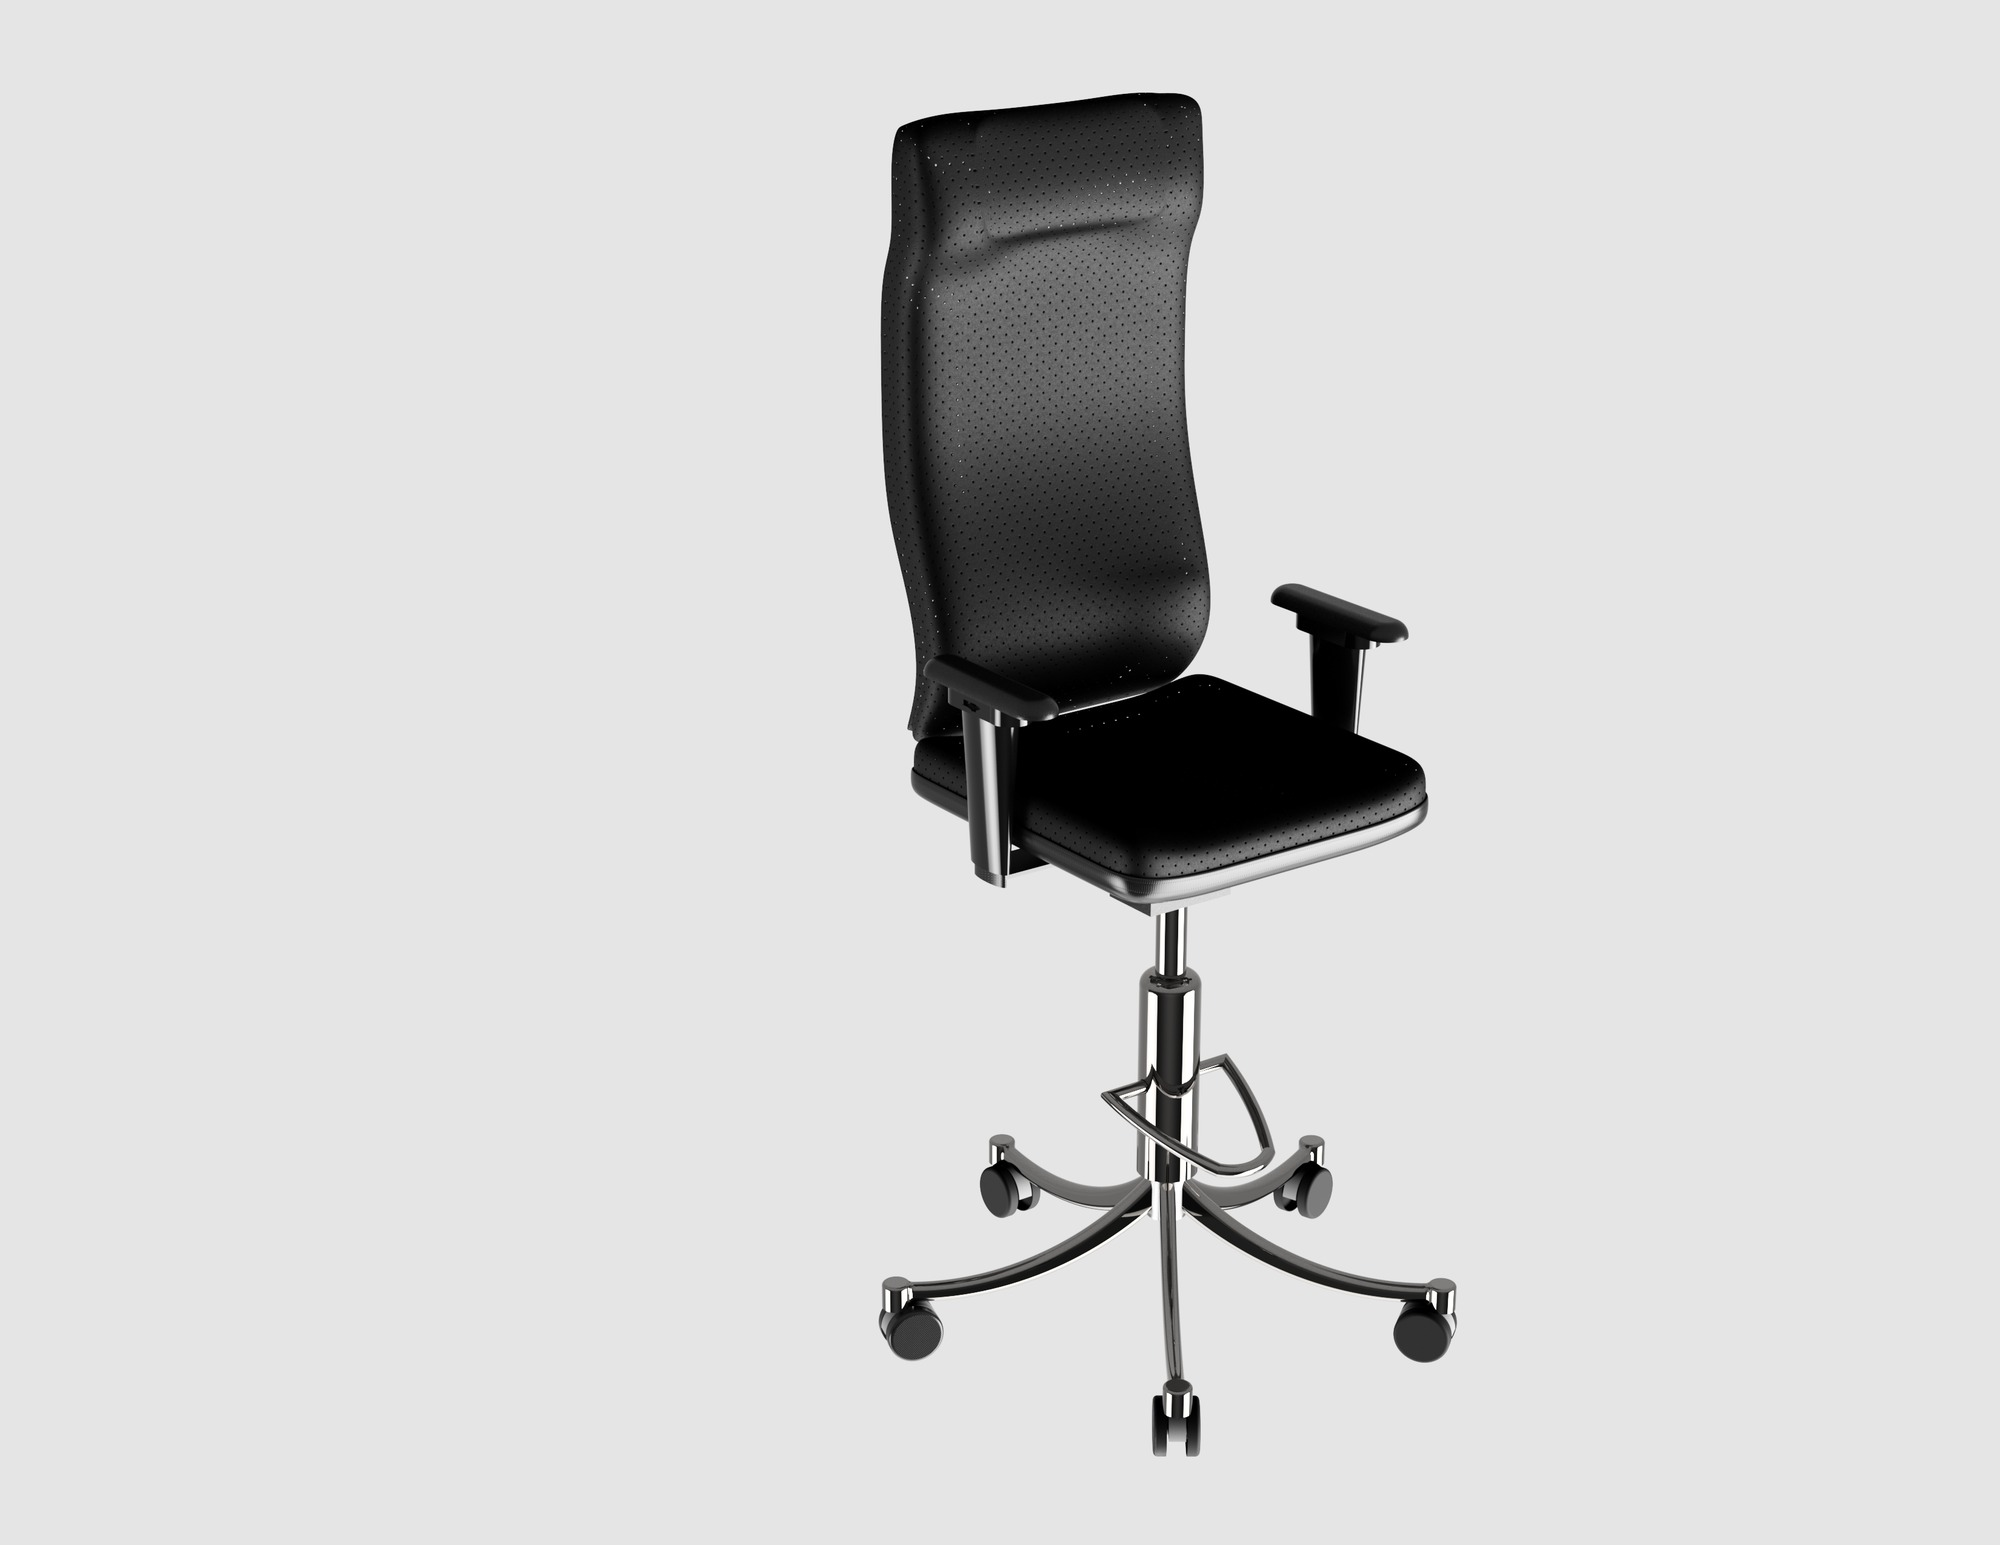 ergonomic chair trial target side chairs office autodesk online gallery